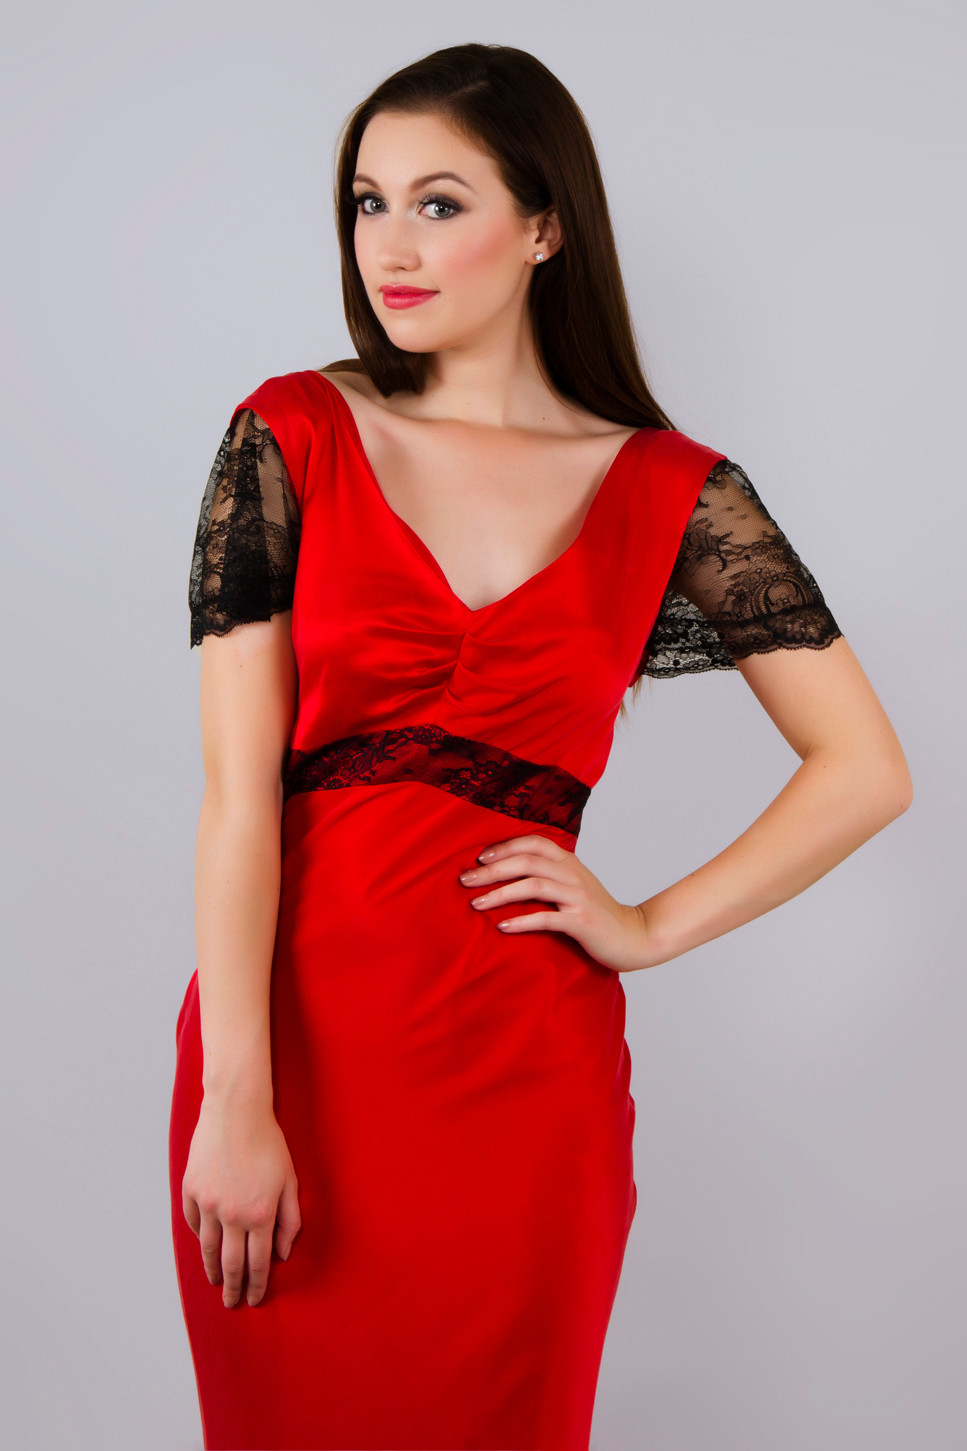 Red Silk and Black French Lace Occasion Dress